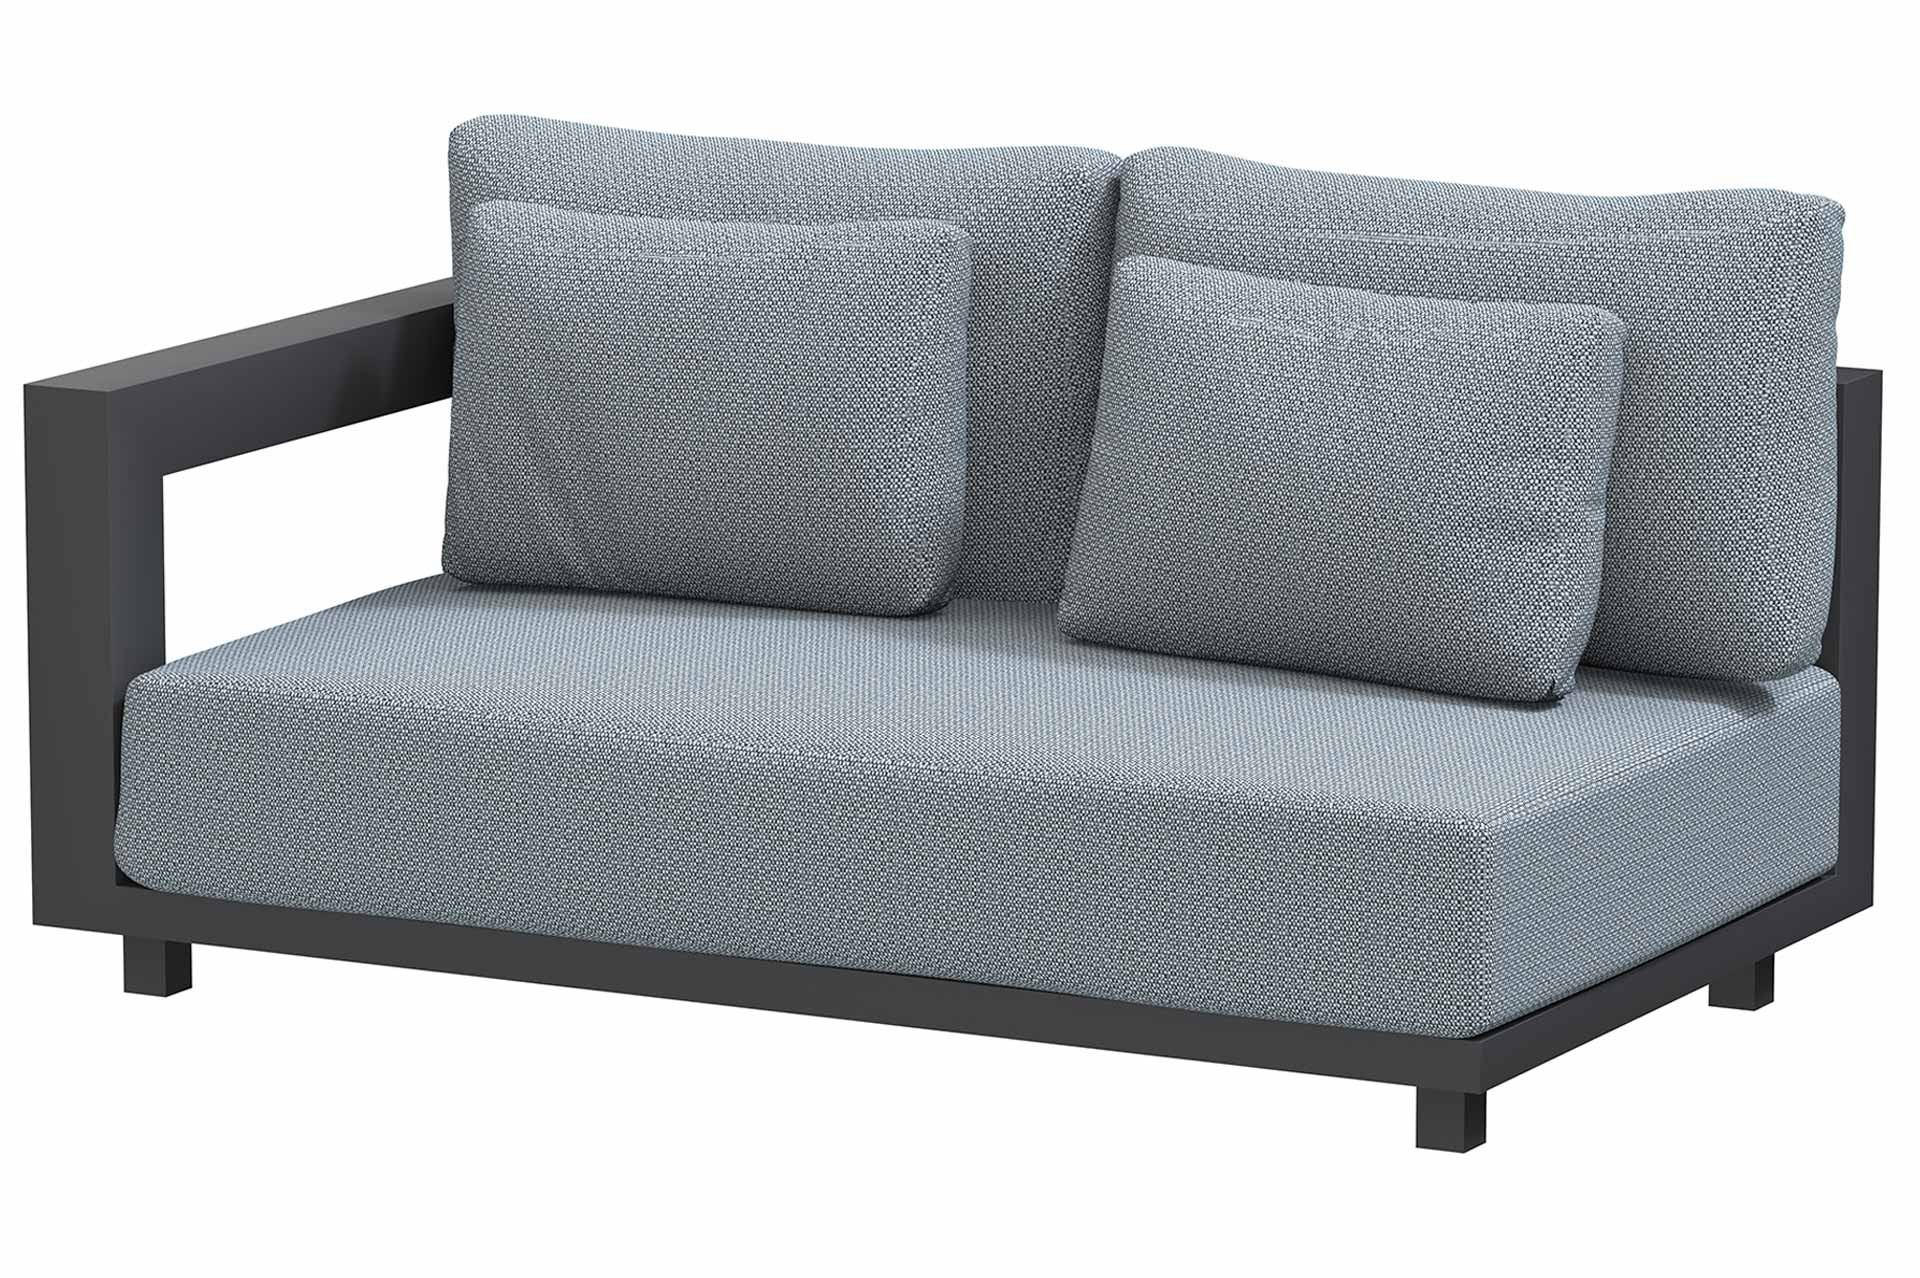 Metropolitan 2.5 seater bench right arm with 5 cushions